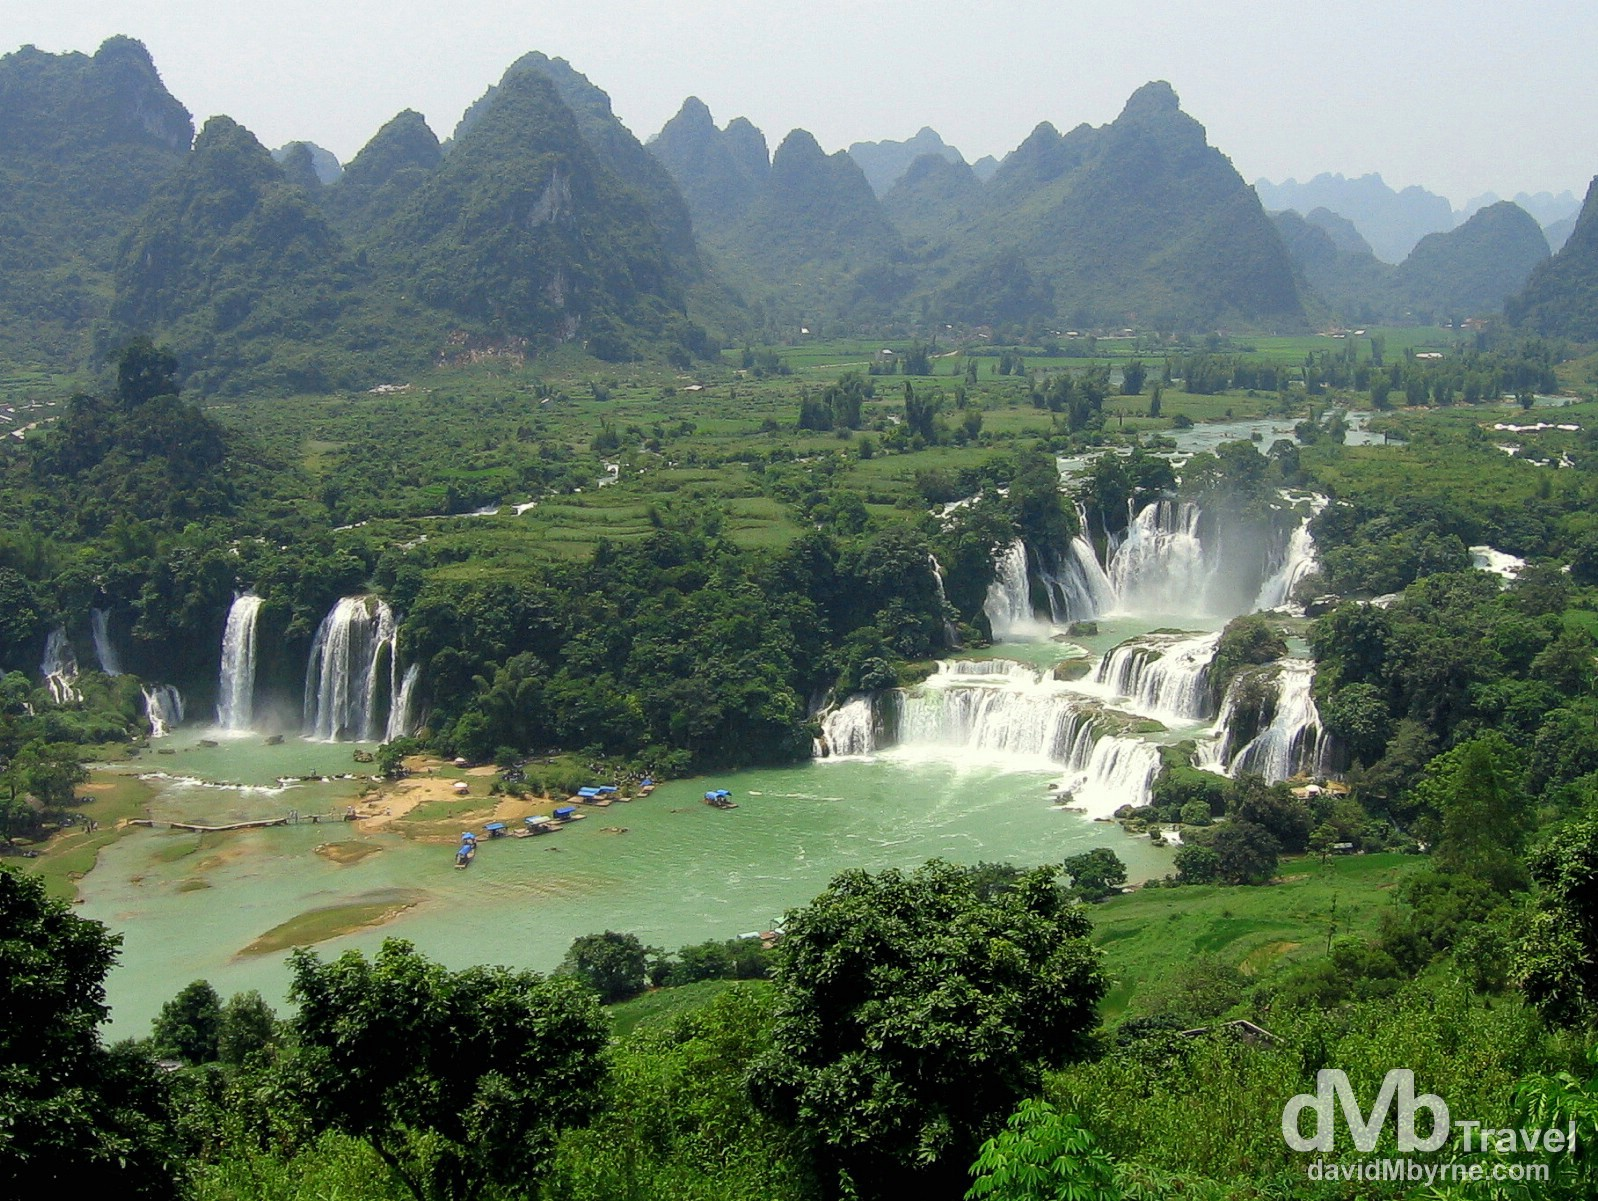 An overview of the impressive Detian Falls (Ban Gioc) straddling the Sino-Vietnamese border. September 2, 2005.